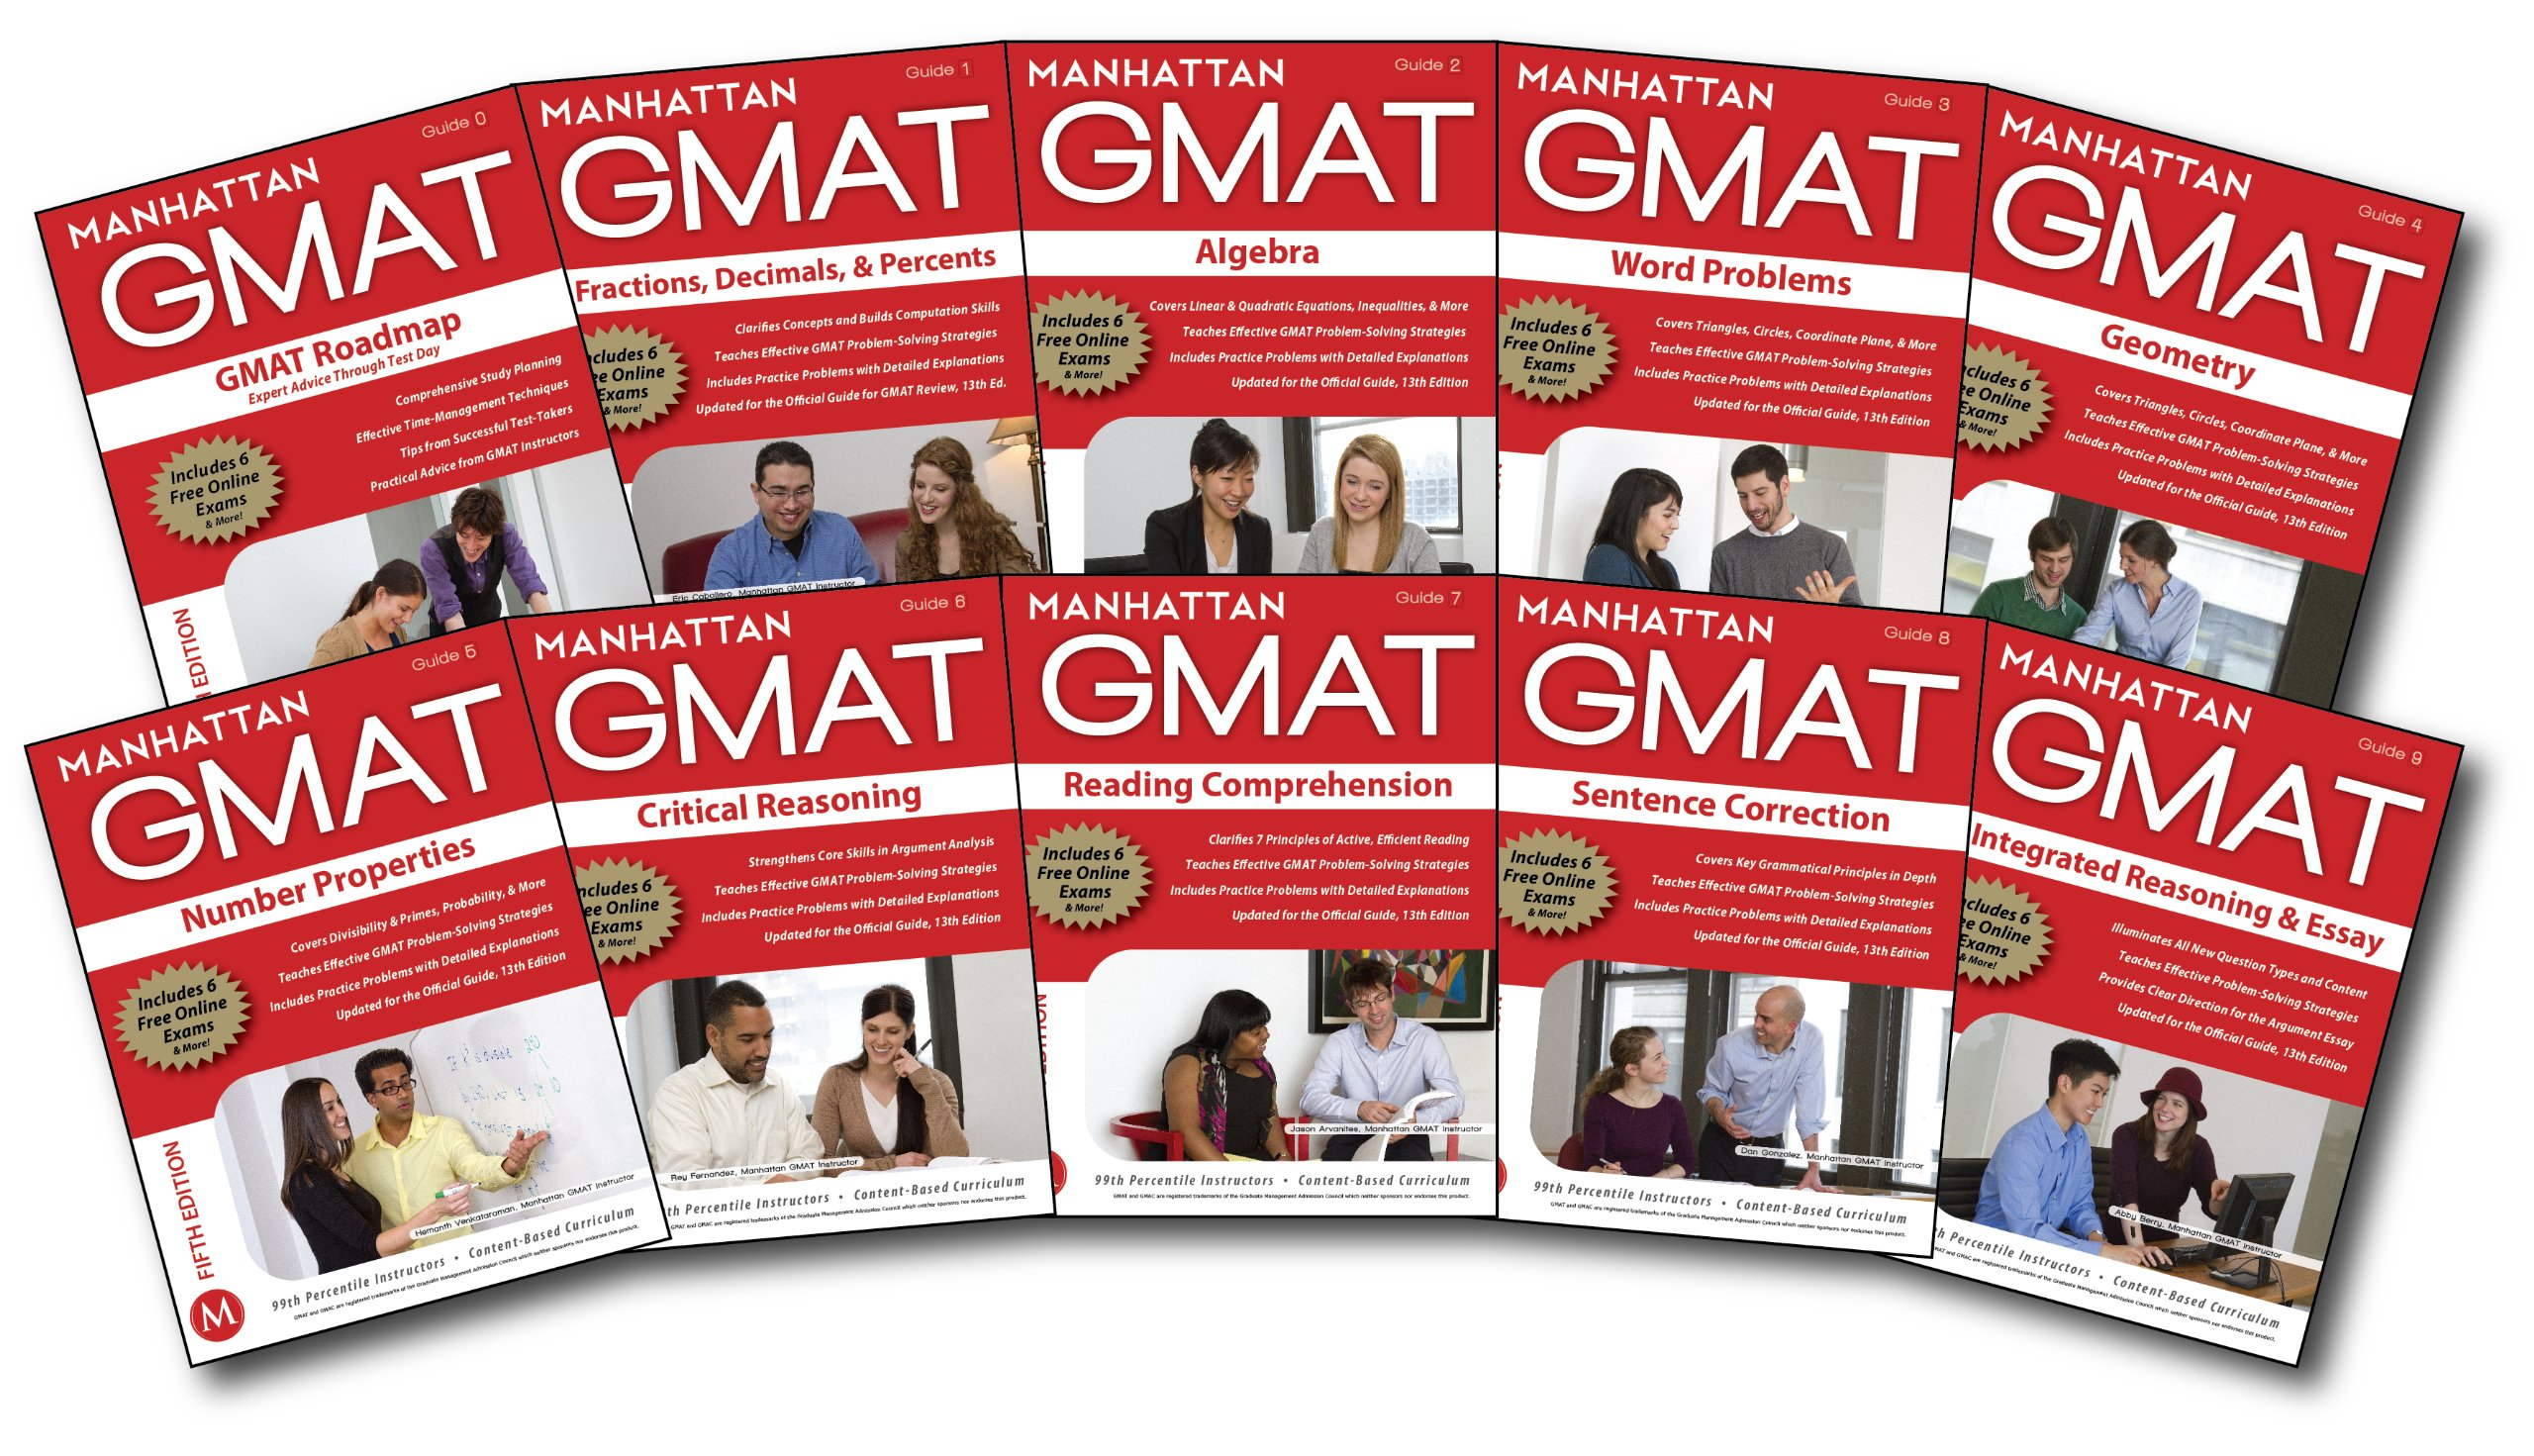 Buy Manhattan GMAT Complete Strategy Guide Set, 5th Edition (Manhattan GMAT  Strategy Guides) Book Online at Low Prices in India | Manhattan GMAT  Complete ...